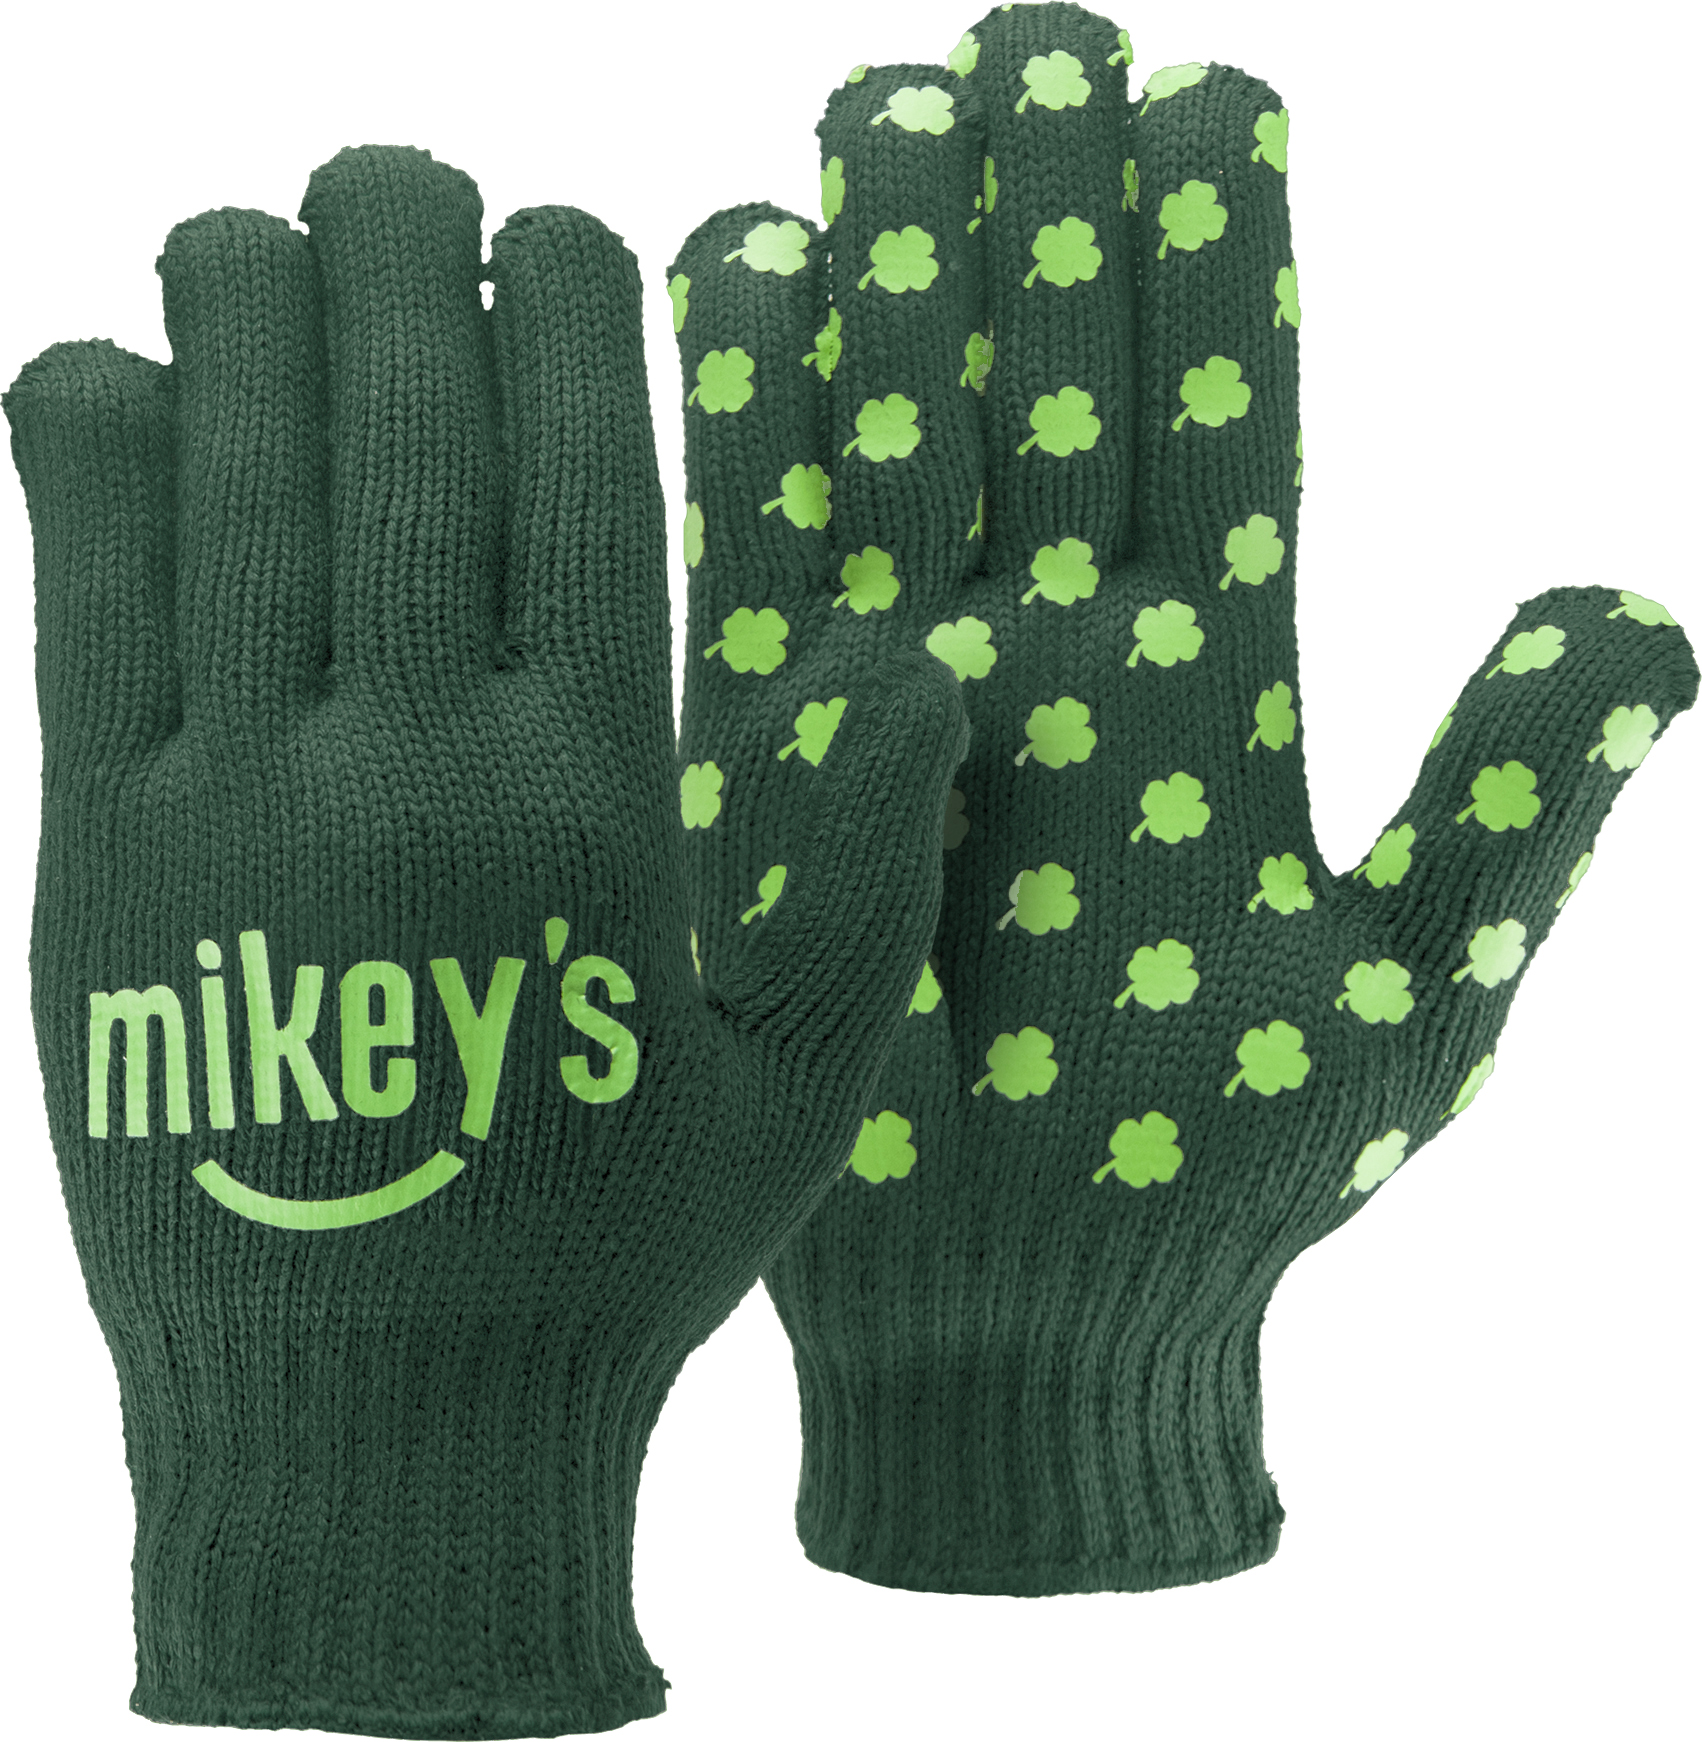 Green Knit Gloves w/Step & Repeat Imprint